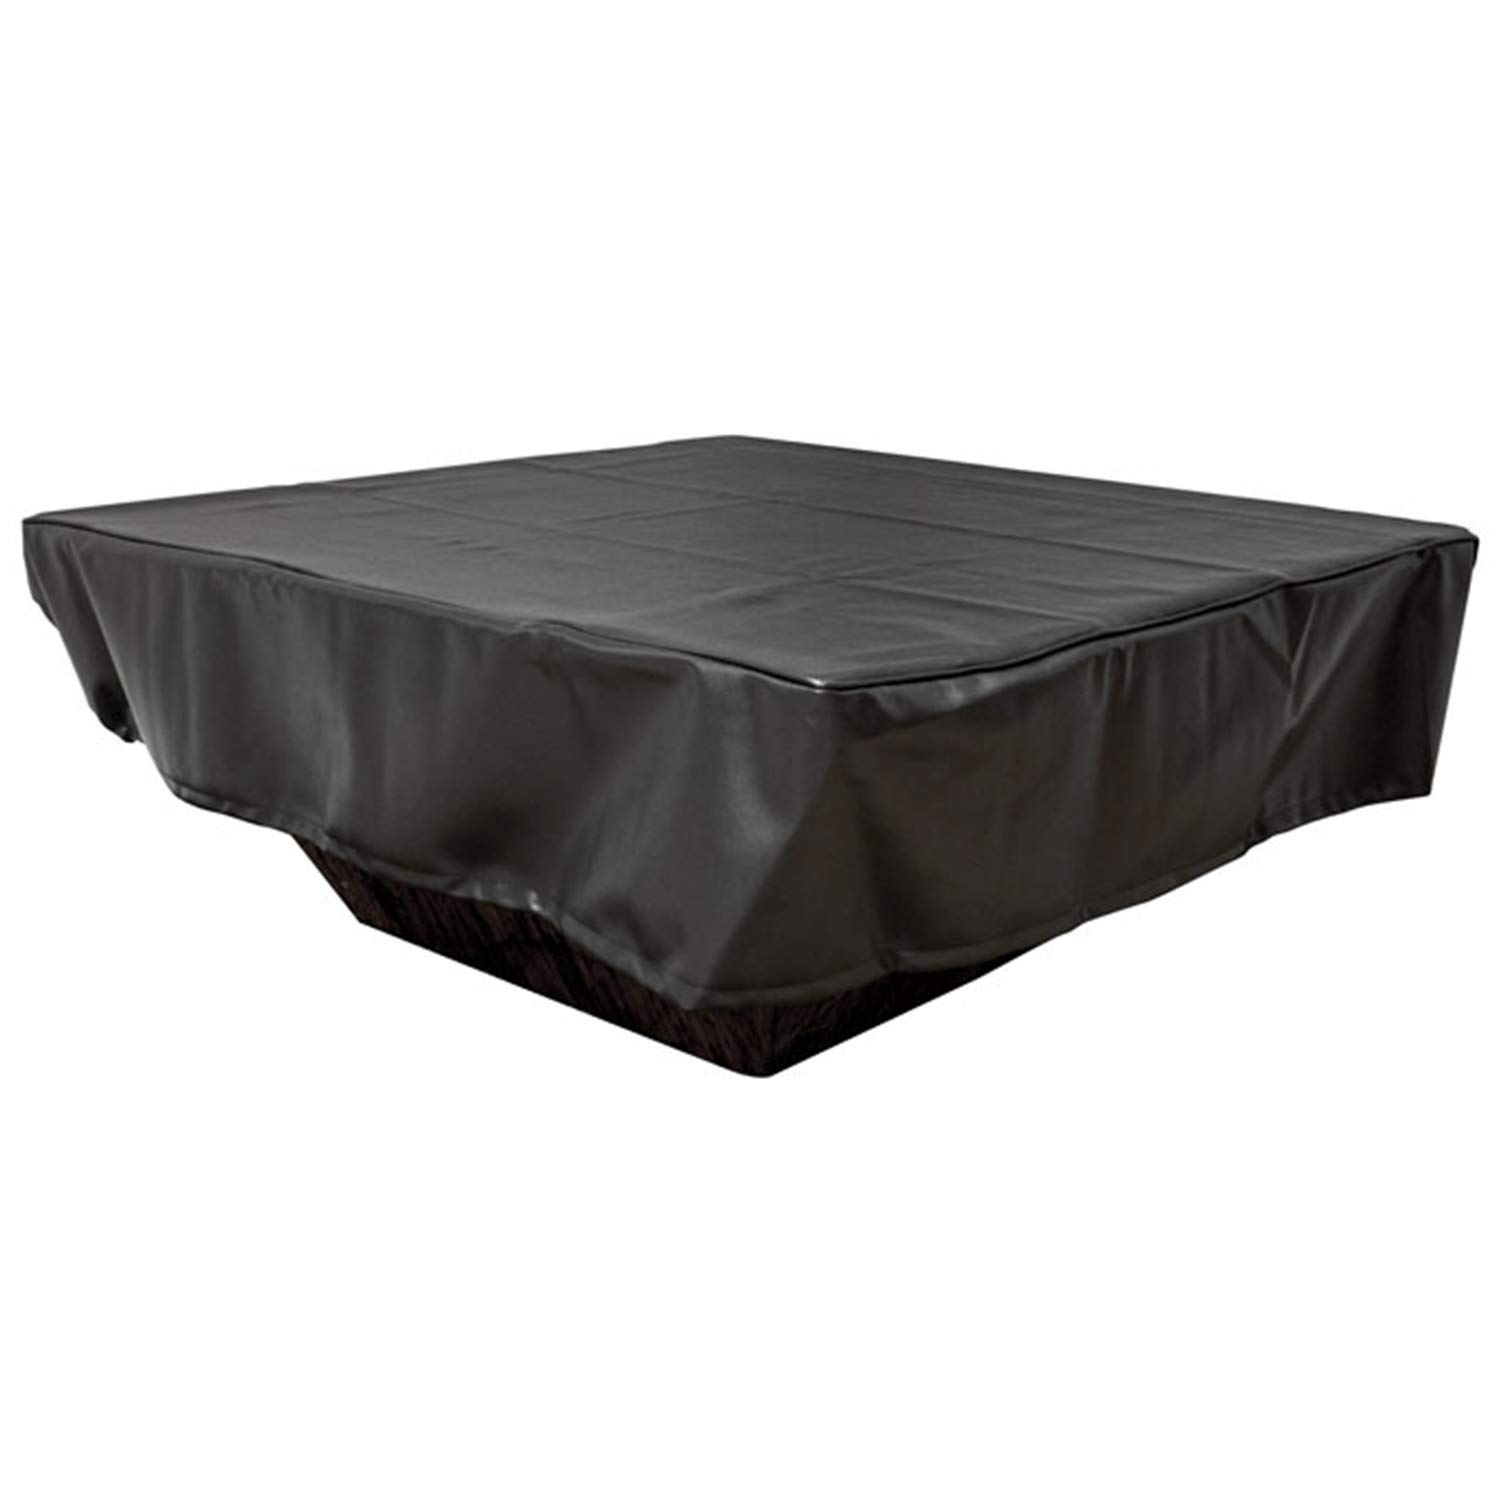 Hearth Products Controls (HPC Black Vinyl Fire Pit Cover (FPC-60SQ), Square, 60x60-Inch by Hearth Products Controls